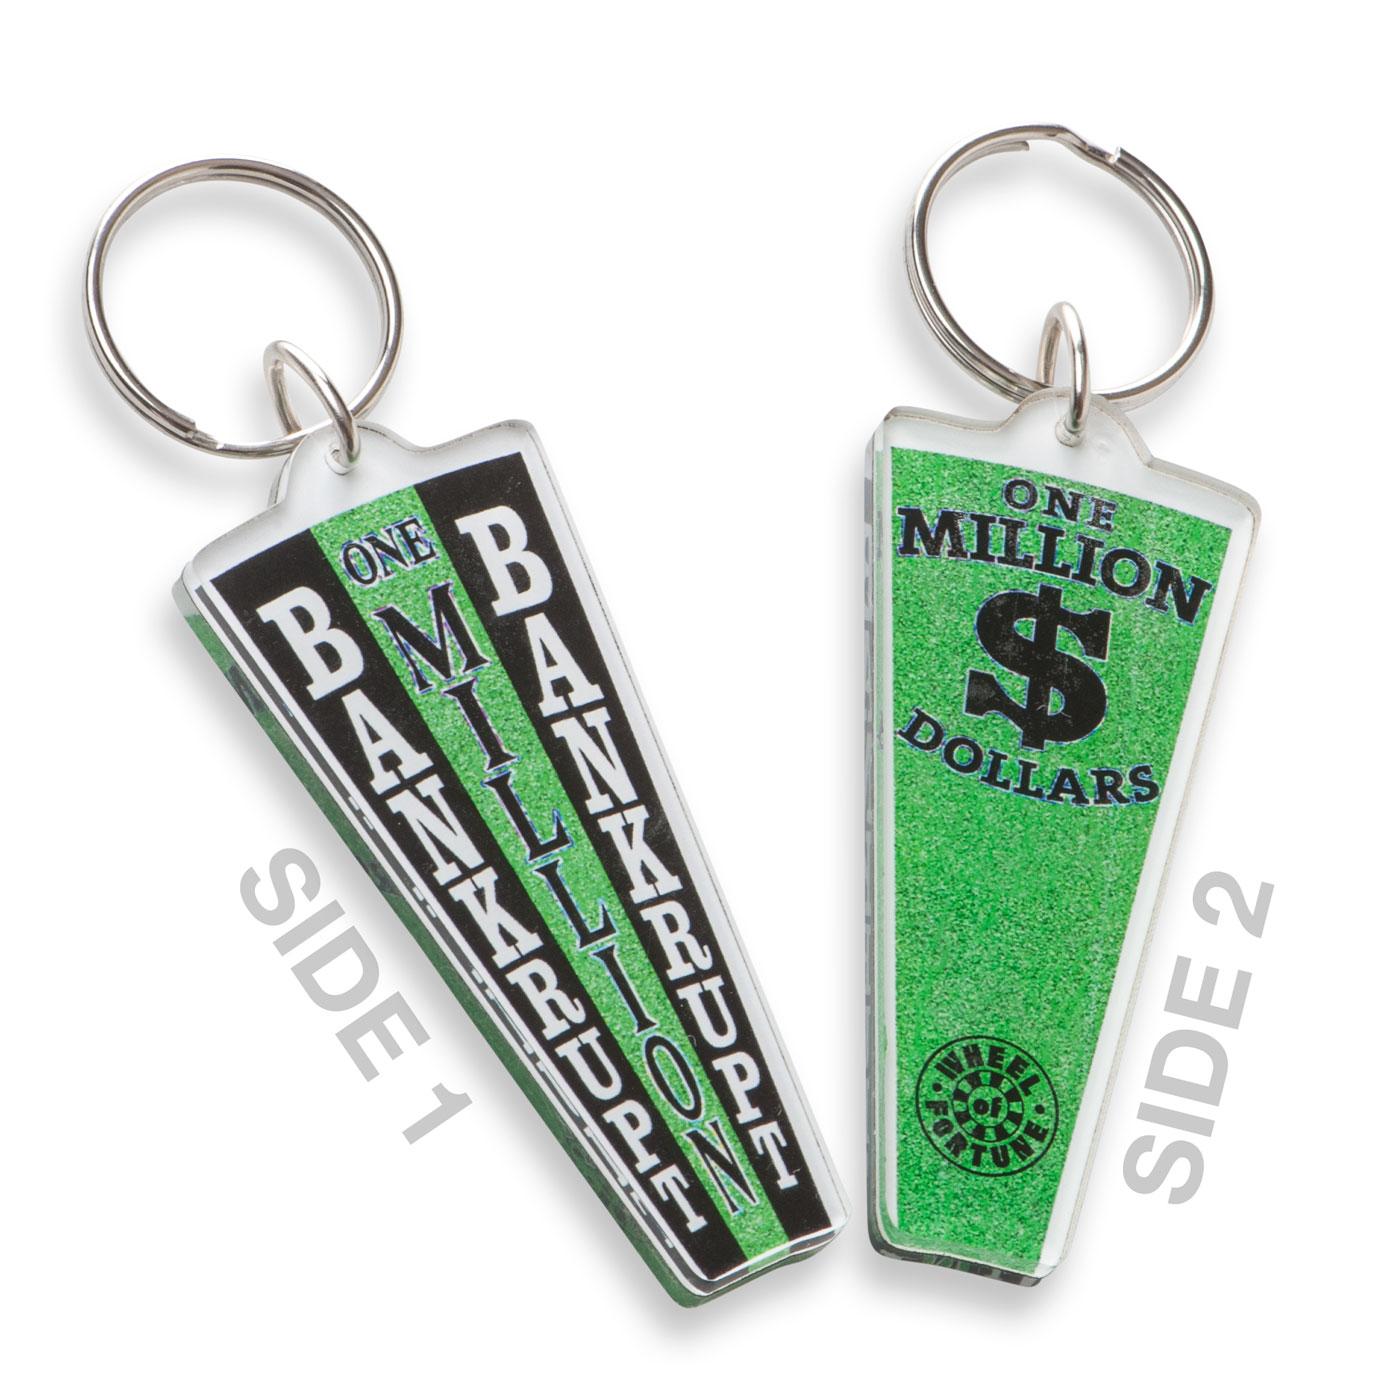 Million Dollar Wedge Keychain